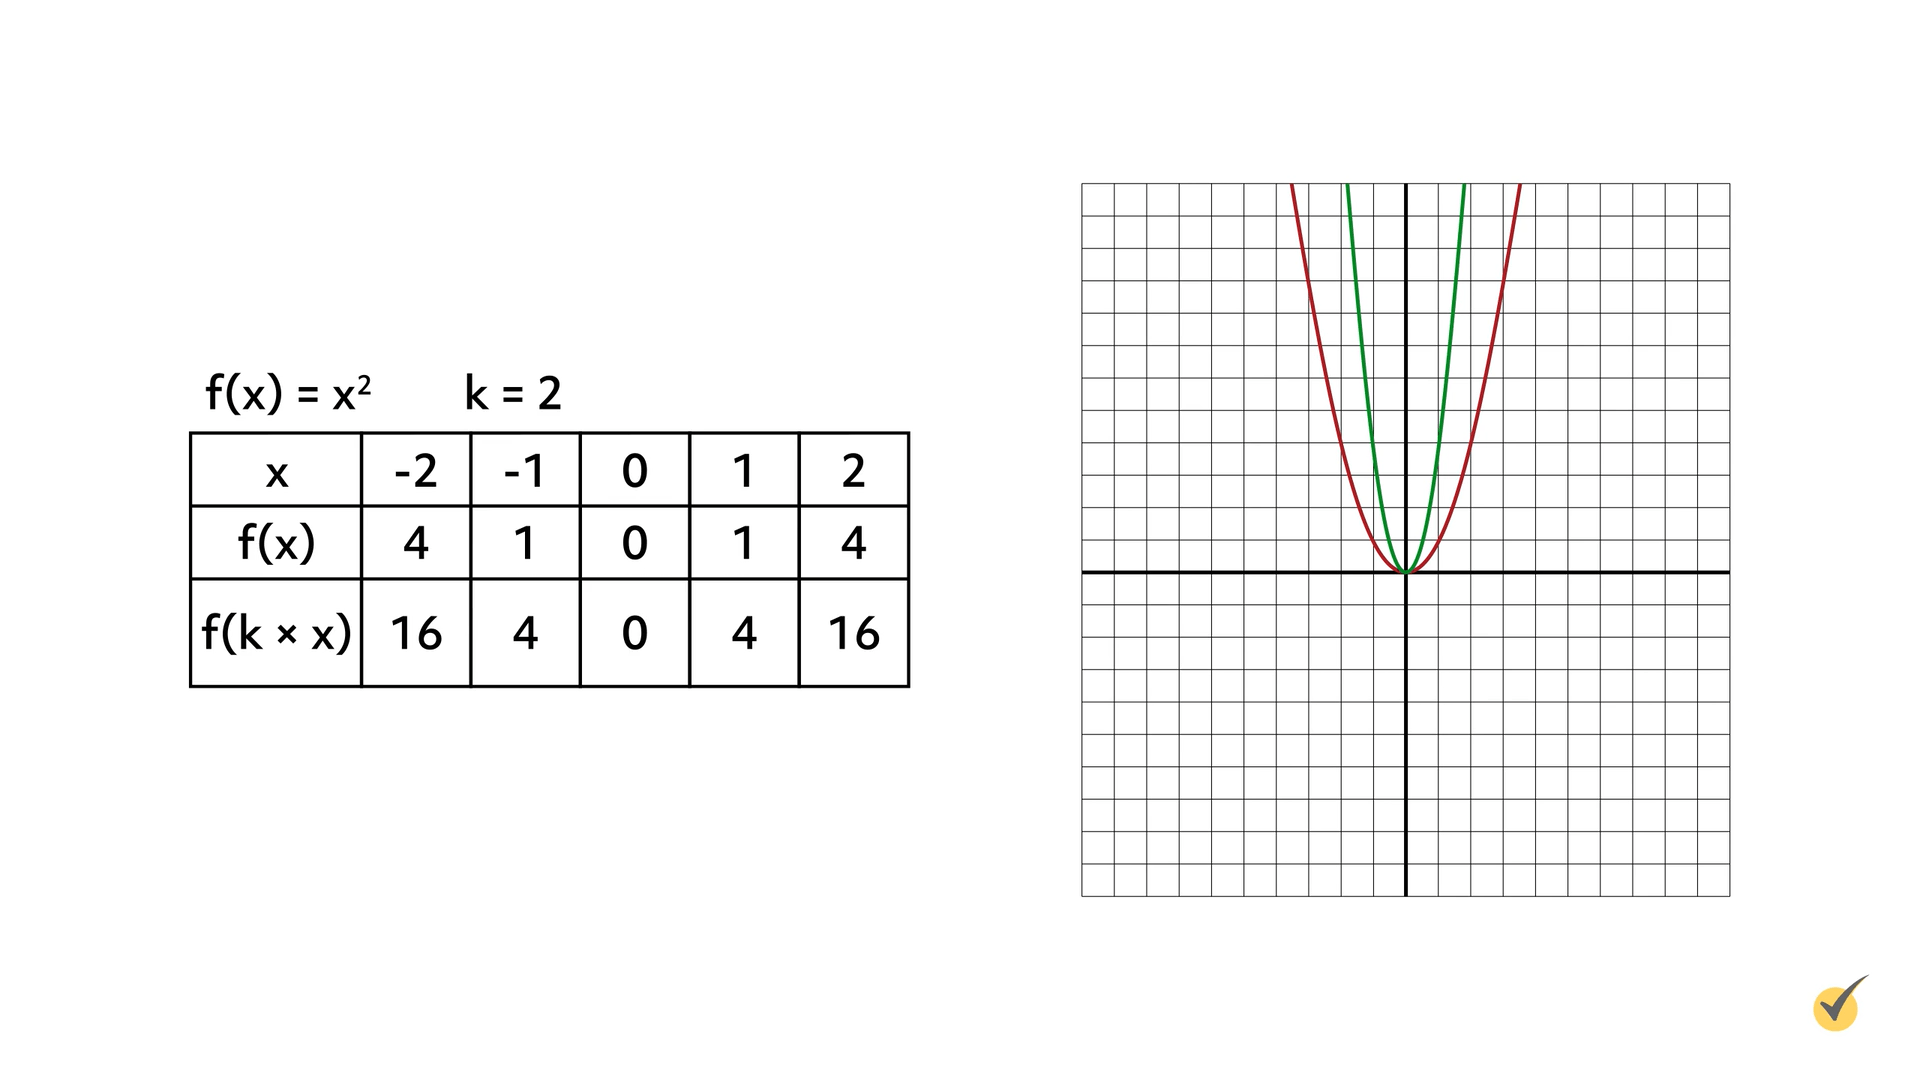 Image of f(x)=x^2 and k=2 plotted on a graph.